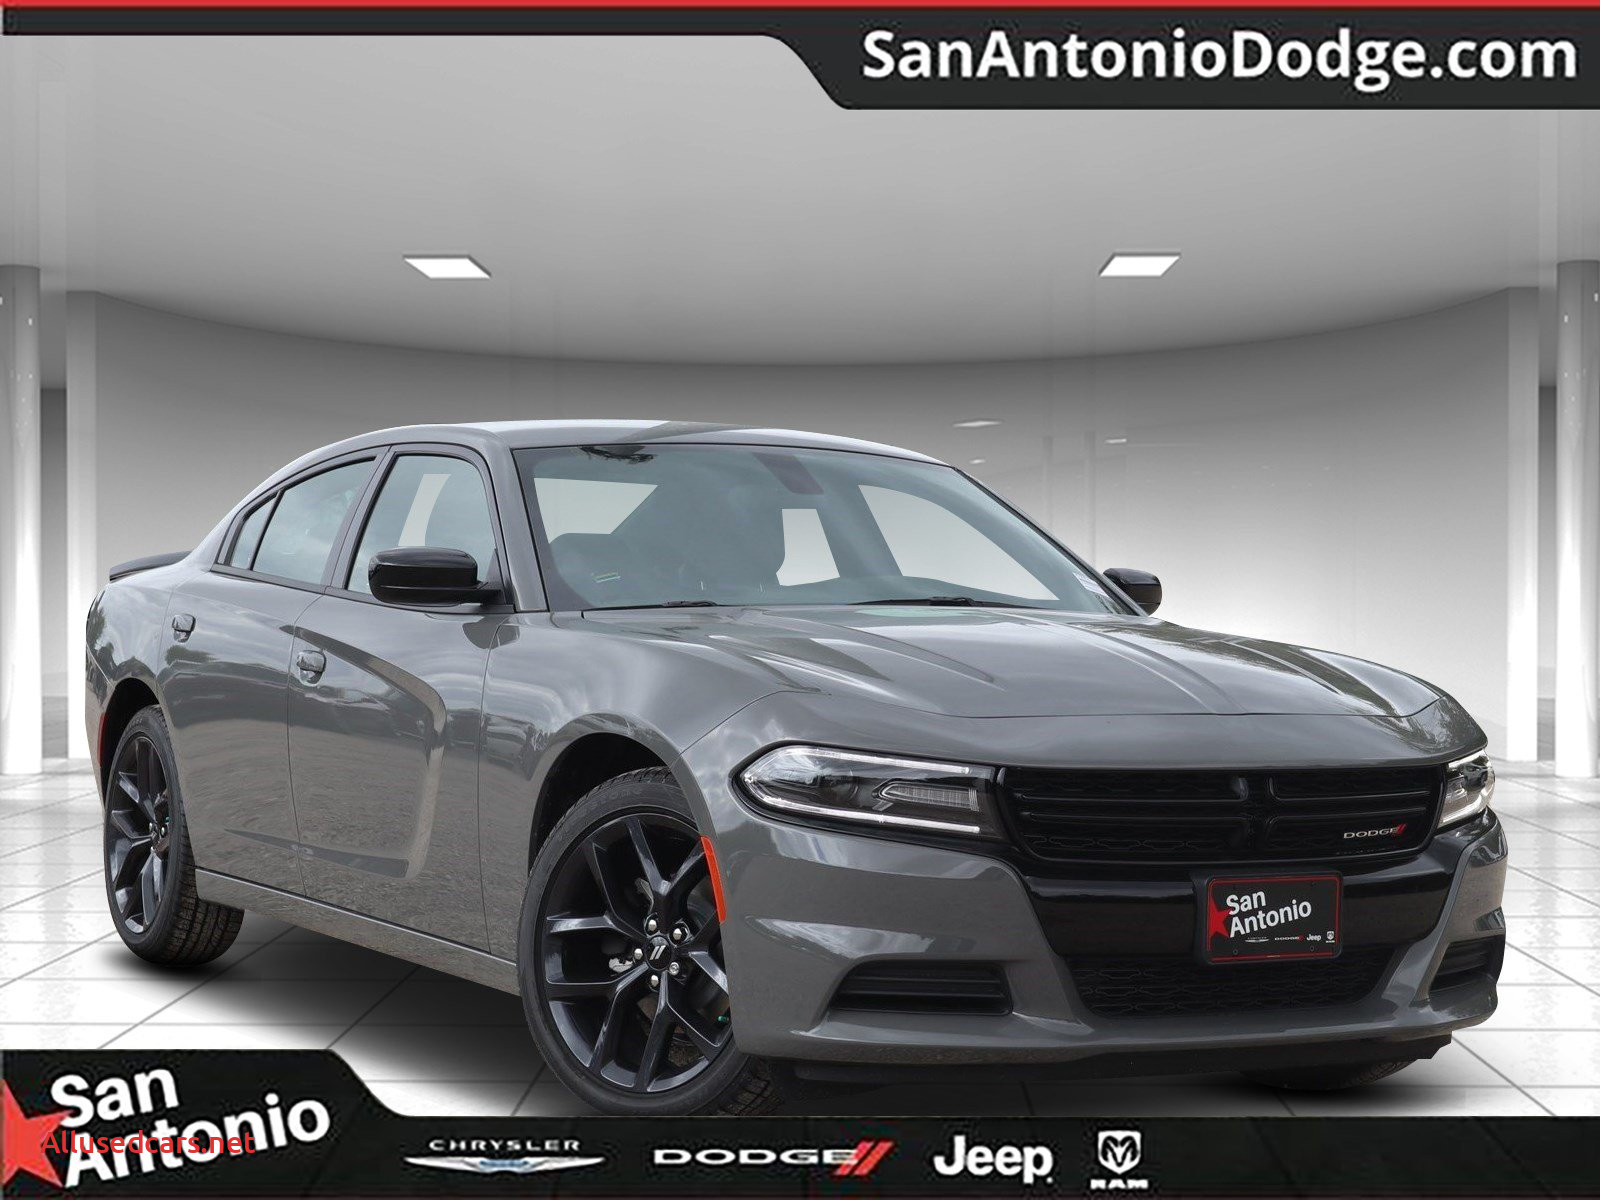 2018 Dodge Charger Sxt Lovely New 2019 Dodge Charger Sxt Sedan In San Antonio 0h